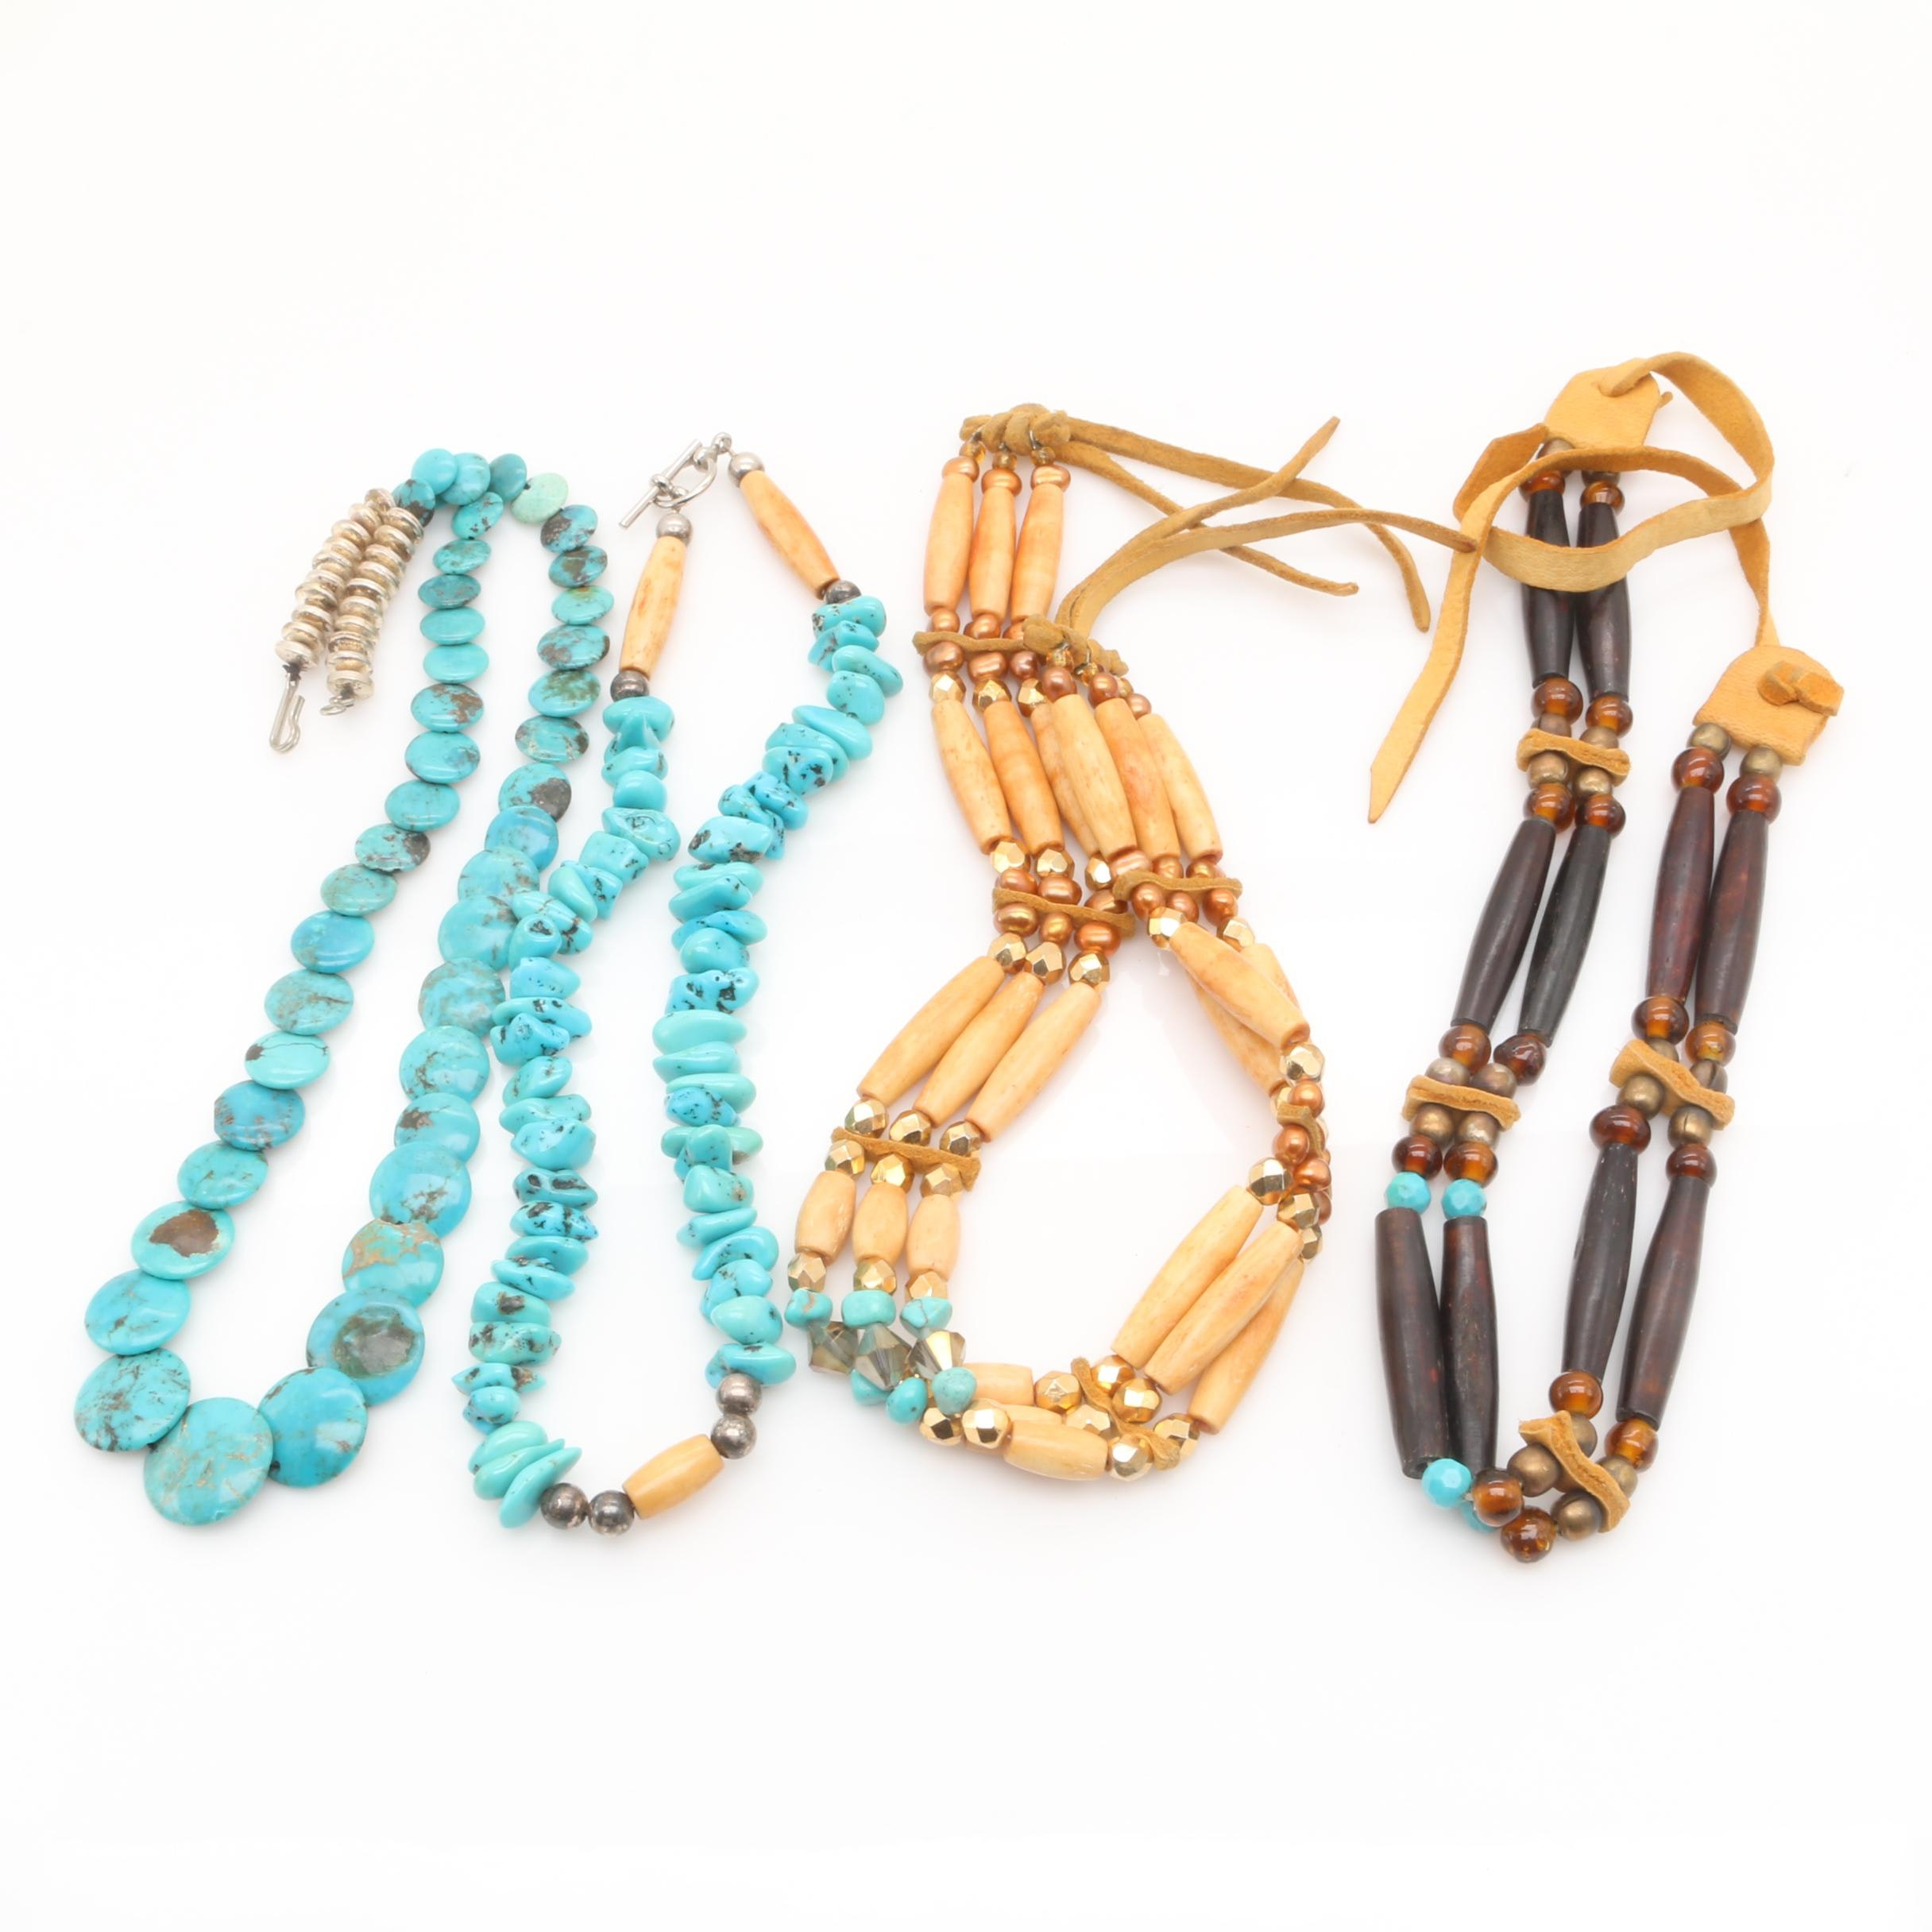 Group of Stabilized Turquoise, Bone and Wood Necklaces Featuring Tanned Hide